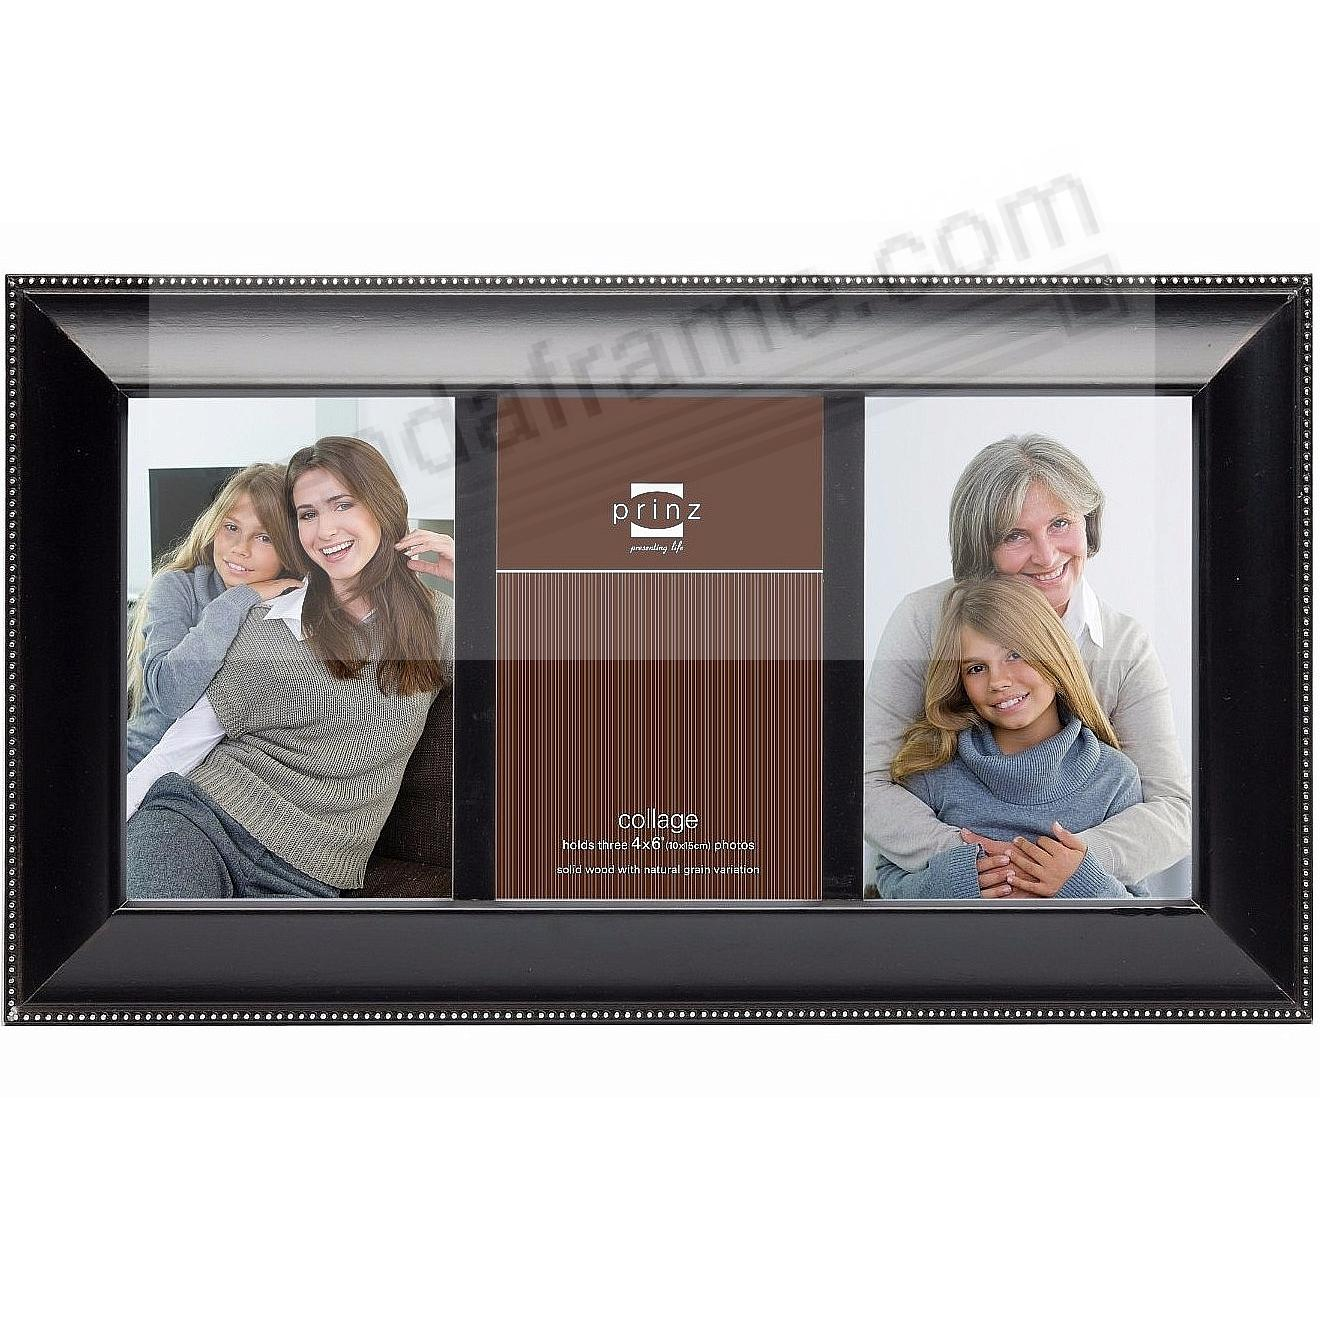 MANDALAY BLACK COLLAGE frame for 3 - 4x6 prints by Prinz®